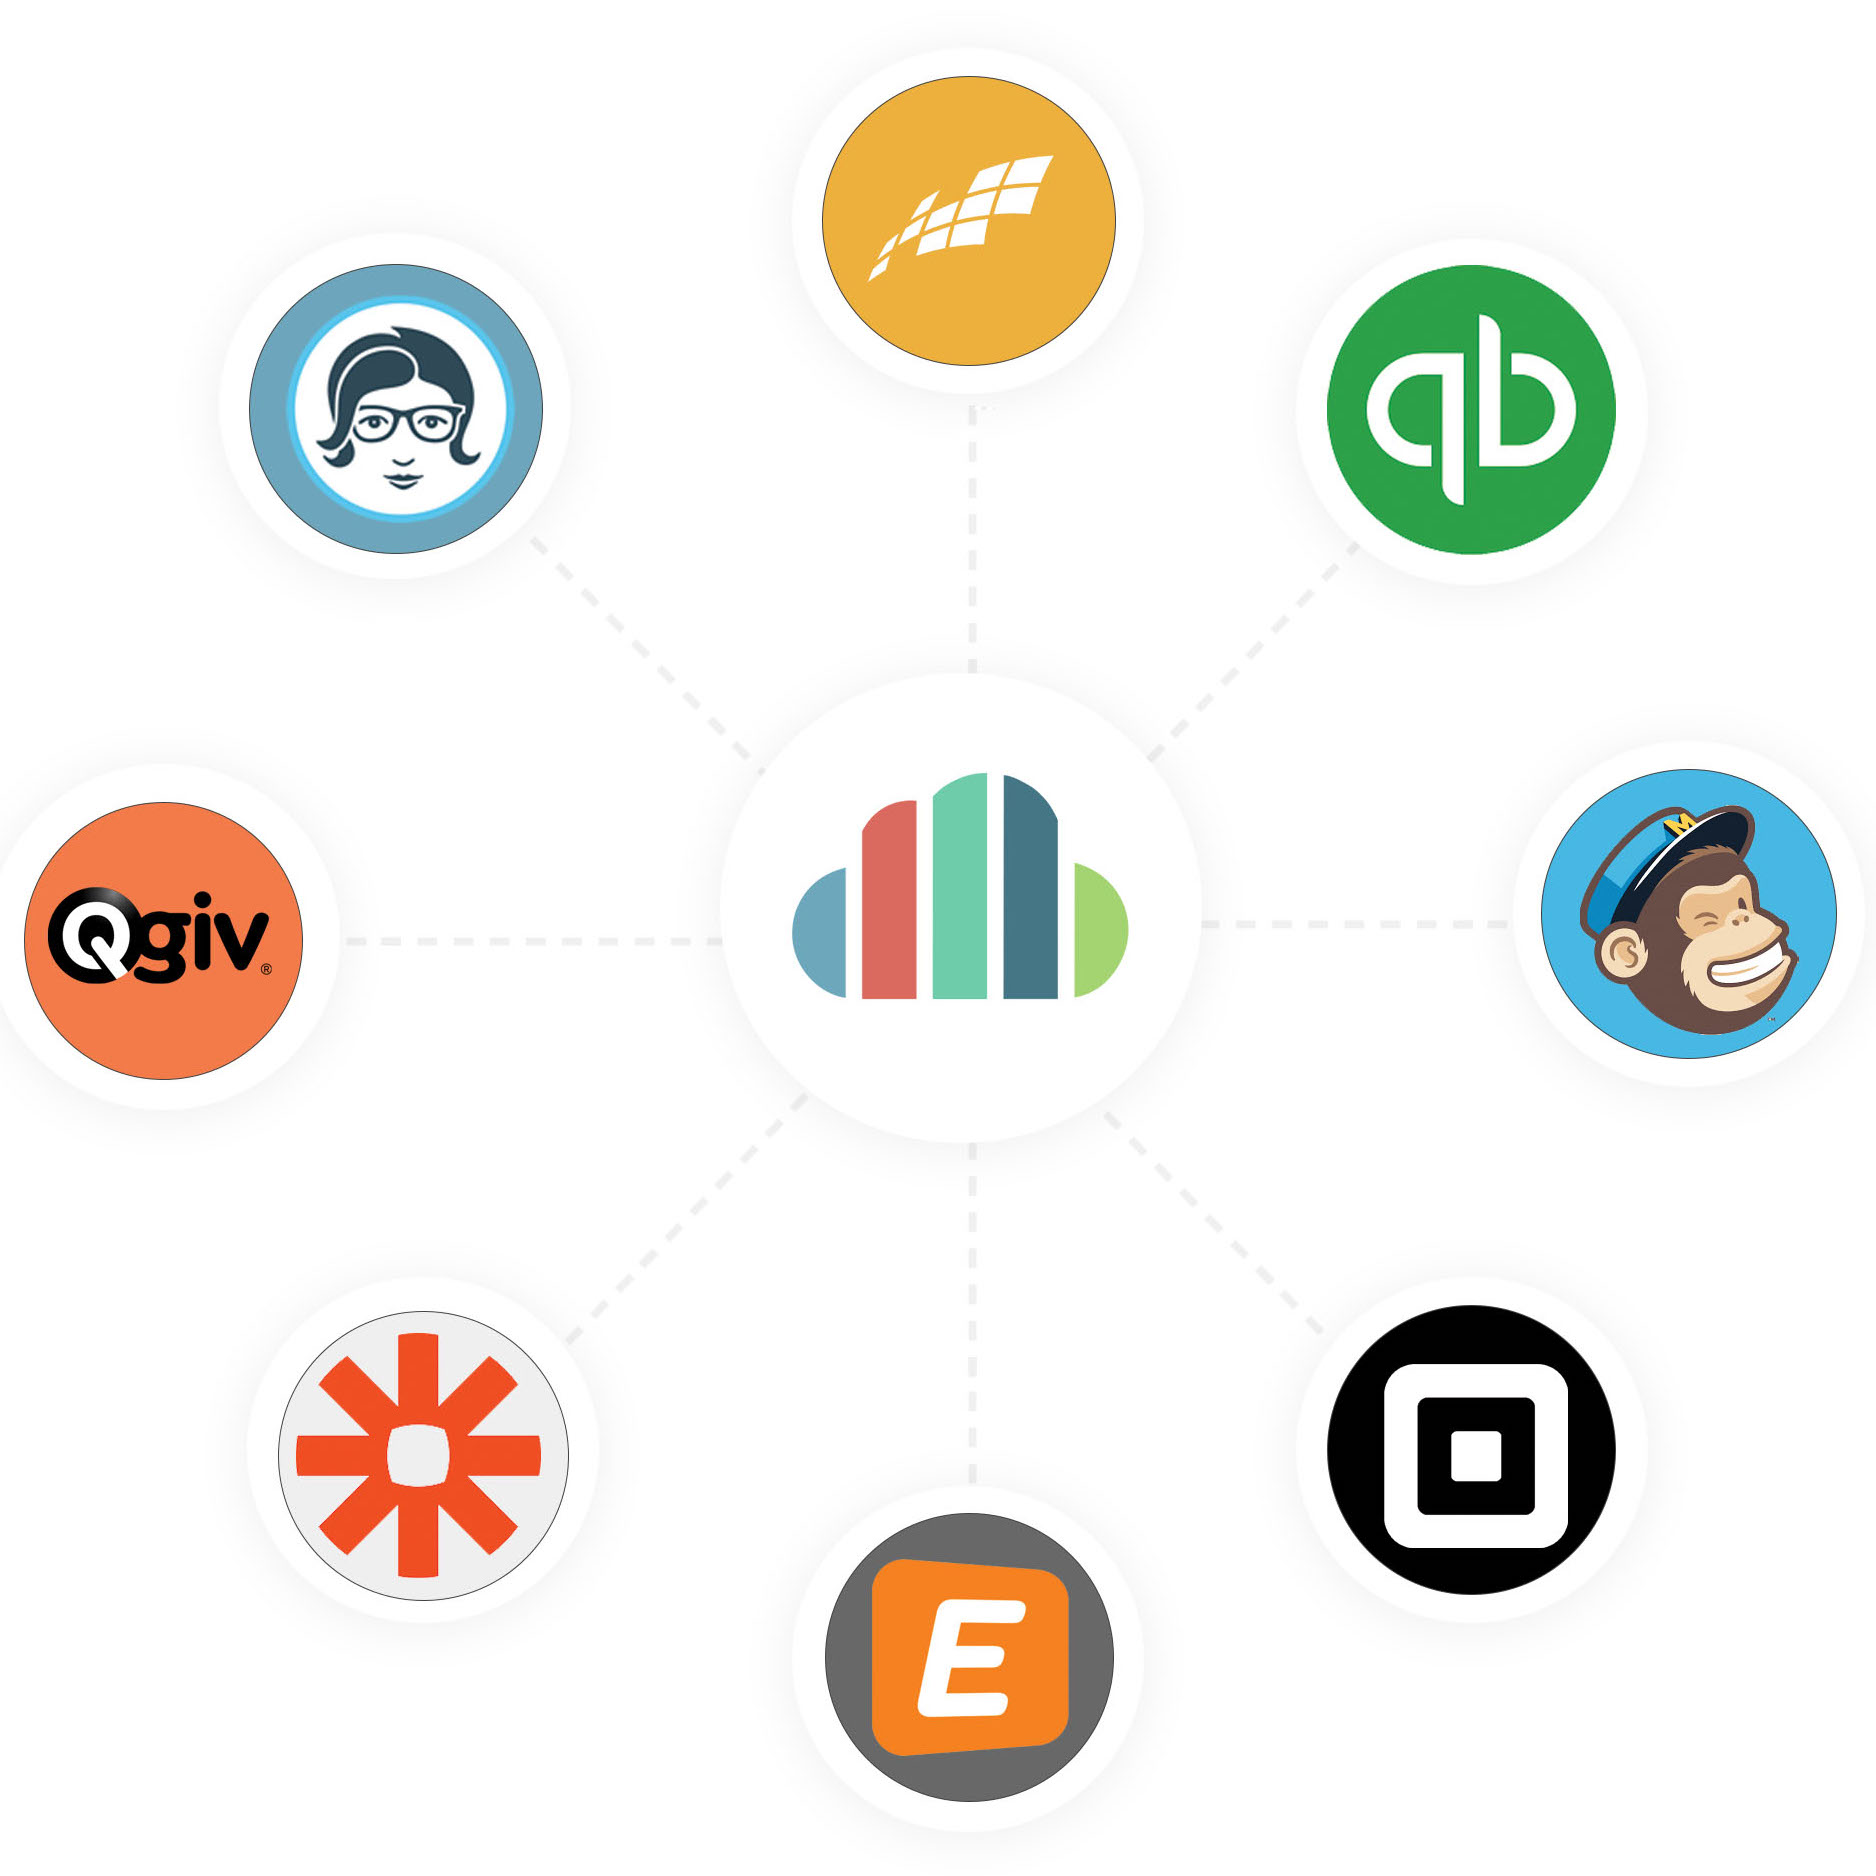 kindful apps and integrations visual